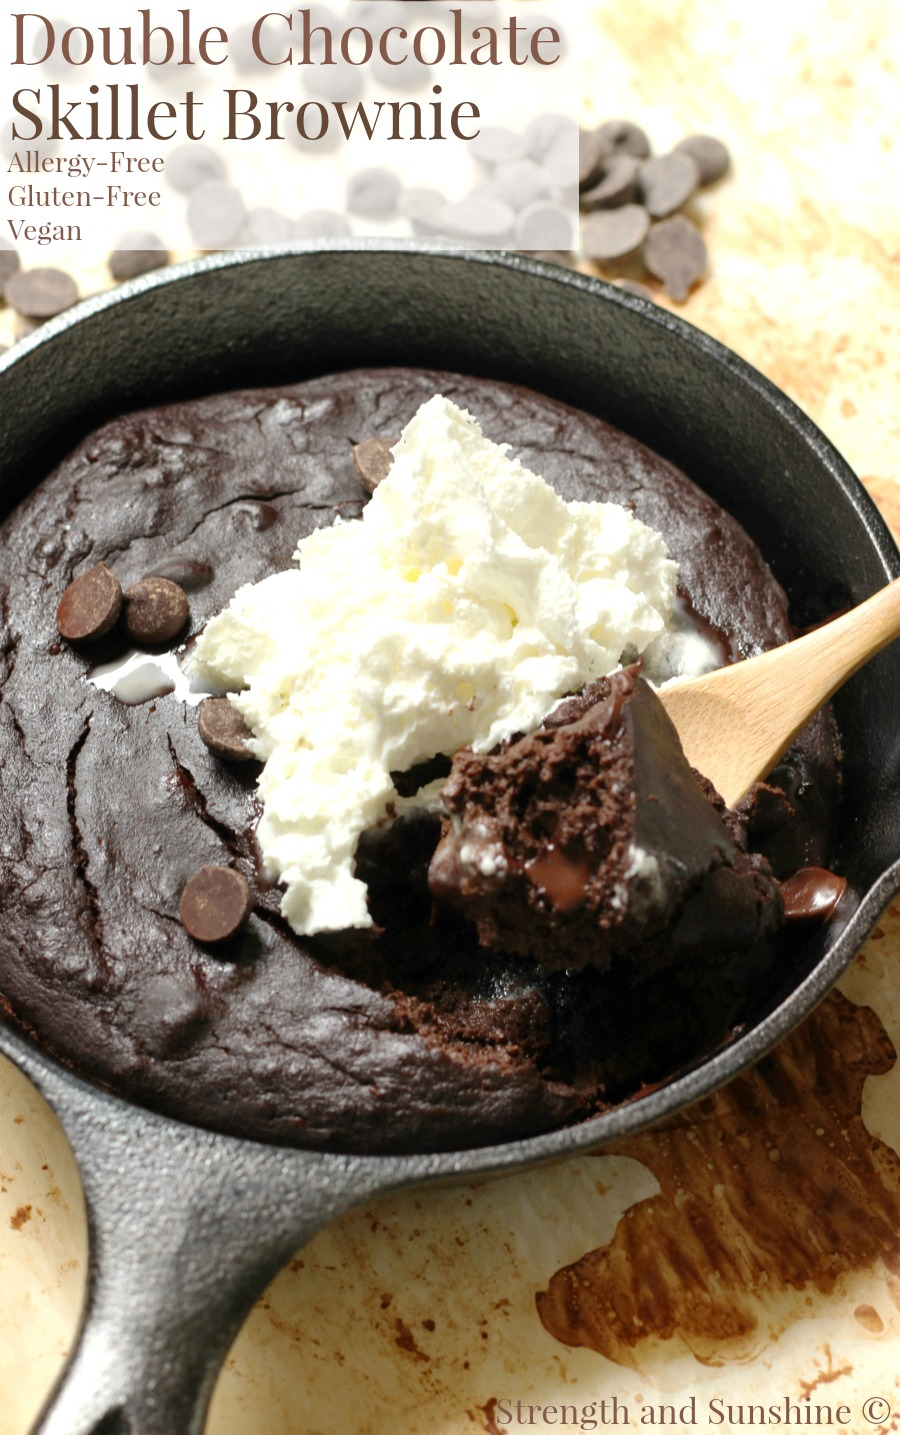 Double Chocolate Skillet Brownie (Gluten-Free, Vegan, Allergy-Free) | Strength and Sunshine @RebeccaGF666 A Double Chocolate Skillet Brownie for one! Gluten-free, vegan, and allergy-free, get ready to bake up a delicious chocolatey dessert right in your cast iron skillet! You can't have too many brownie recipes and one you can eat with a spoon? There's always room for that!